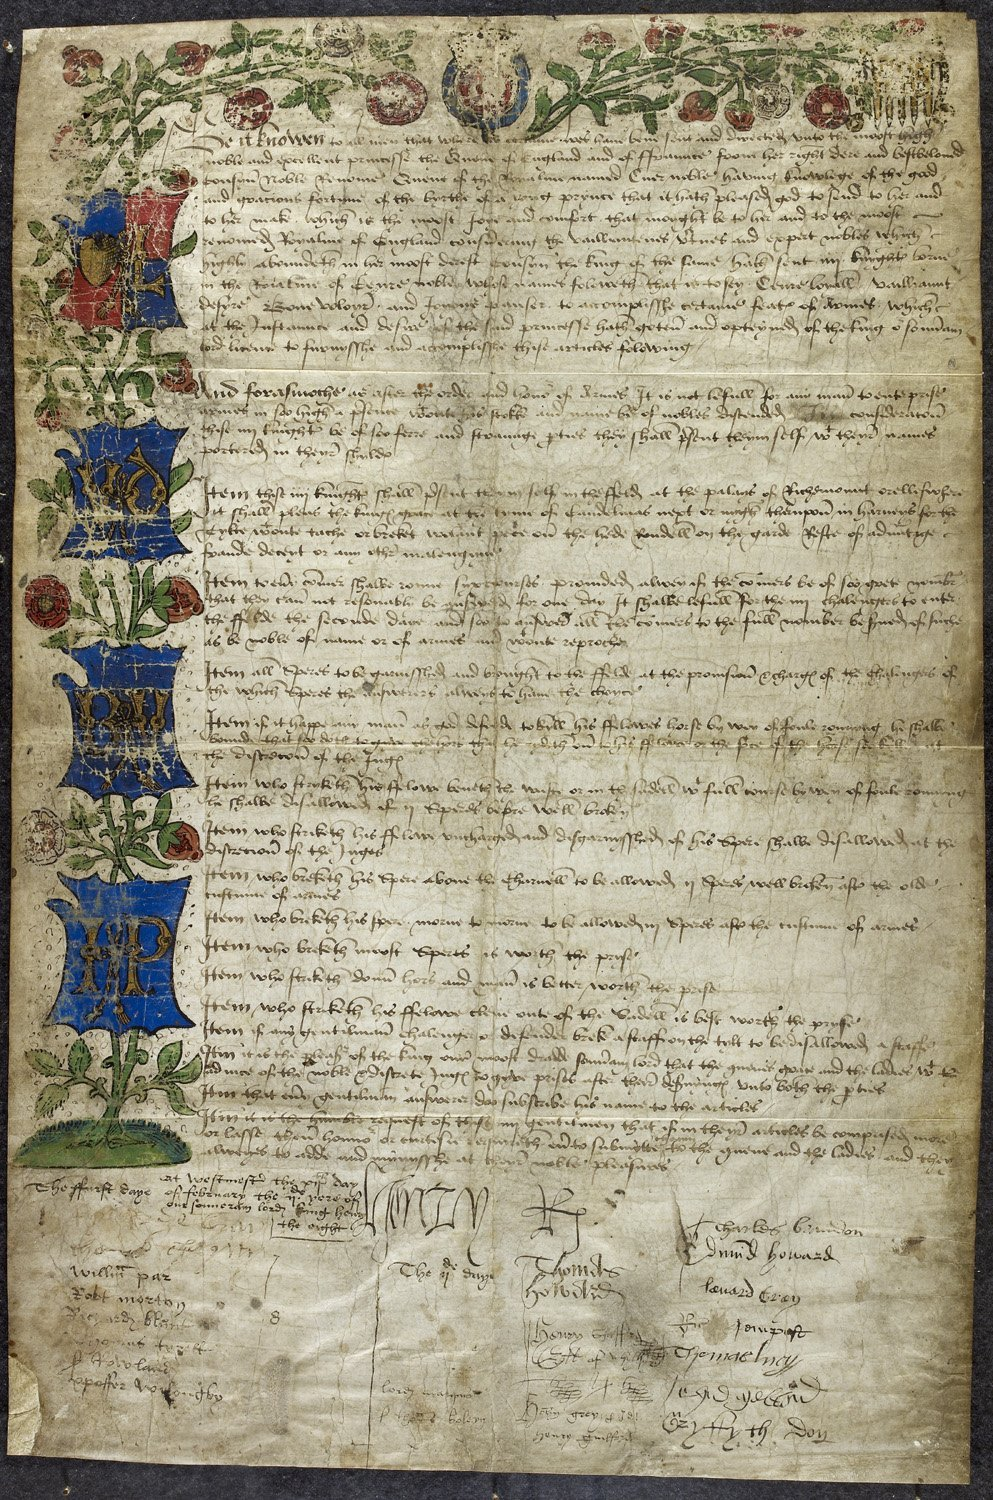 A Grand Gesture: Henry VIII and the Westminster Tournament